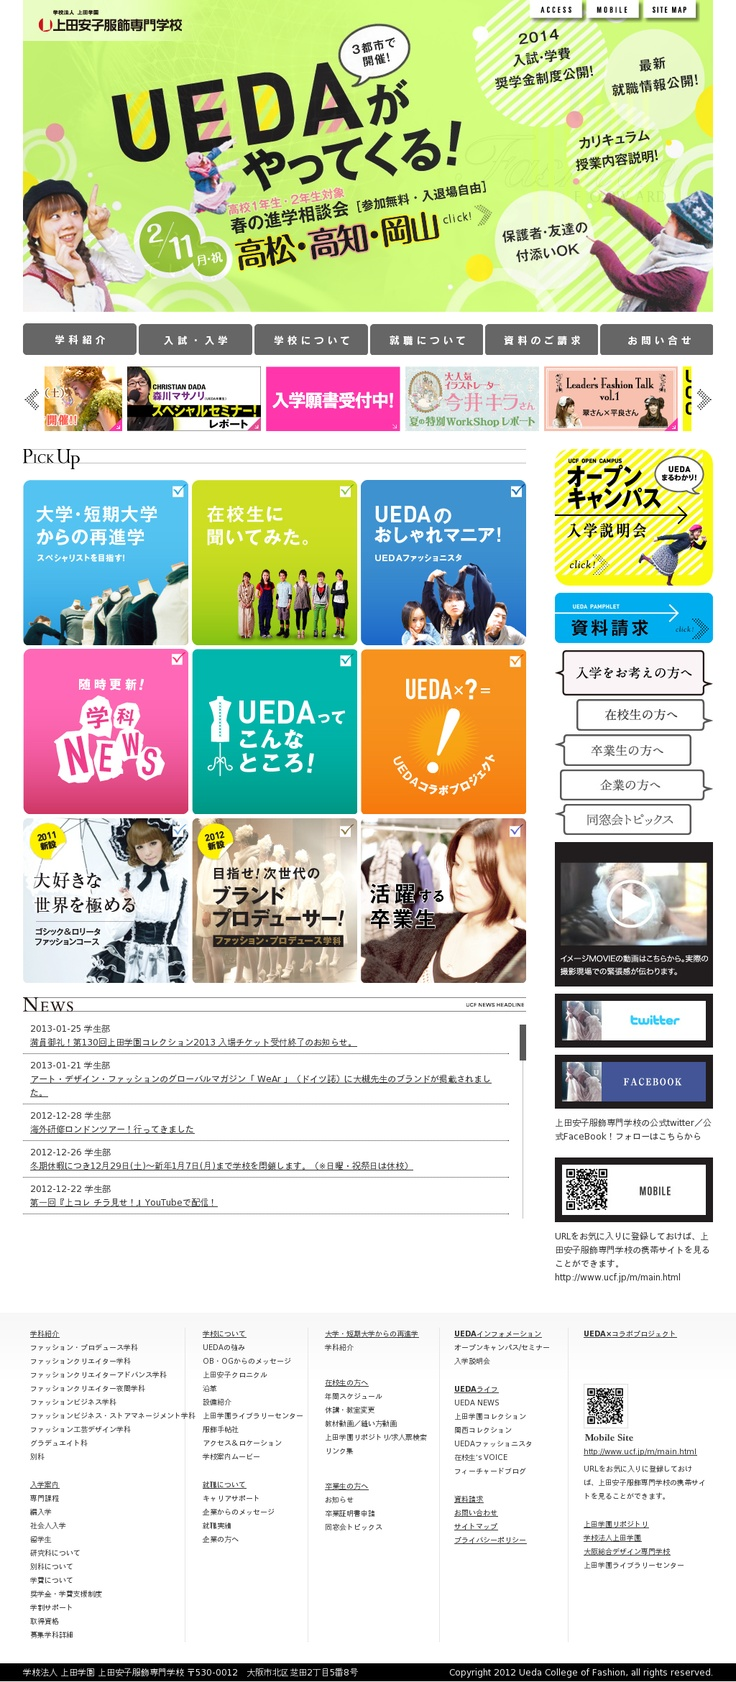 Website 'http://www.ucf.jp/' snapped on Snapito!